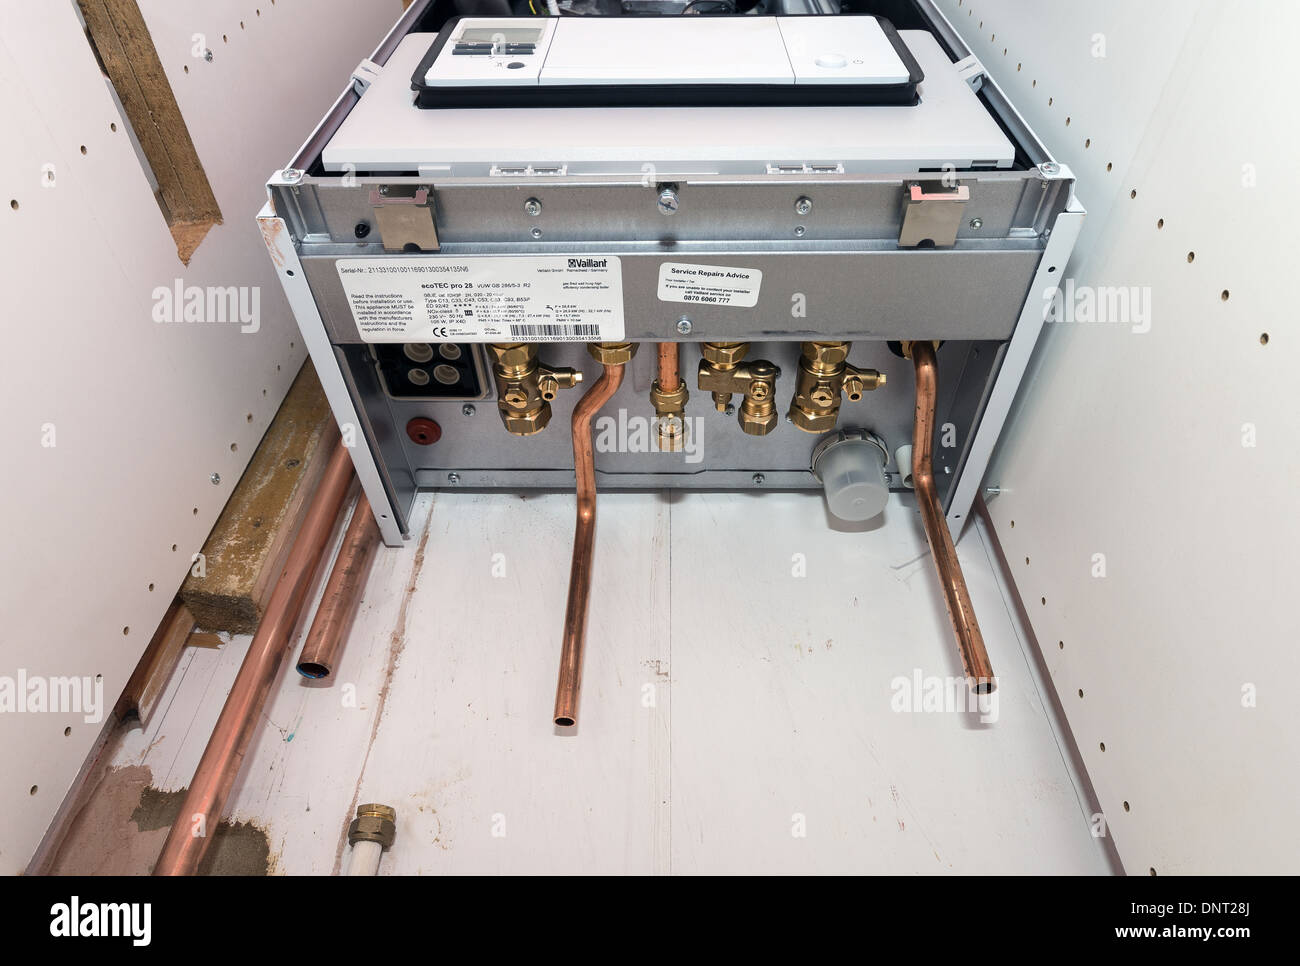 Boiler Installation Stock Photos & Boiler Installation Stock Images ...